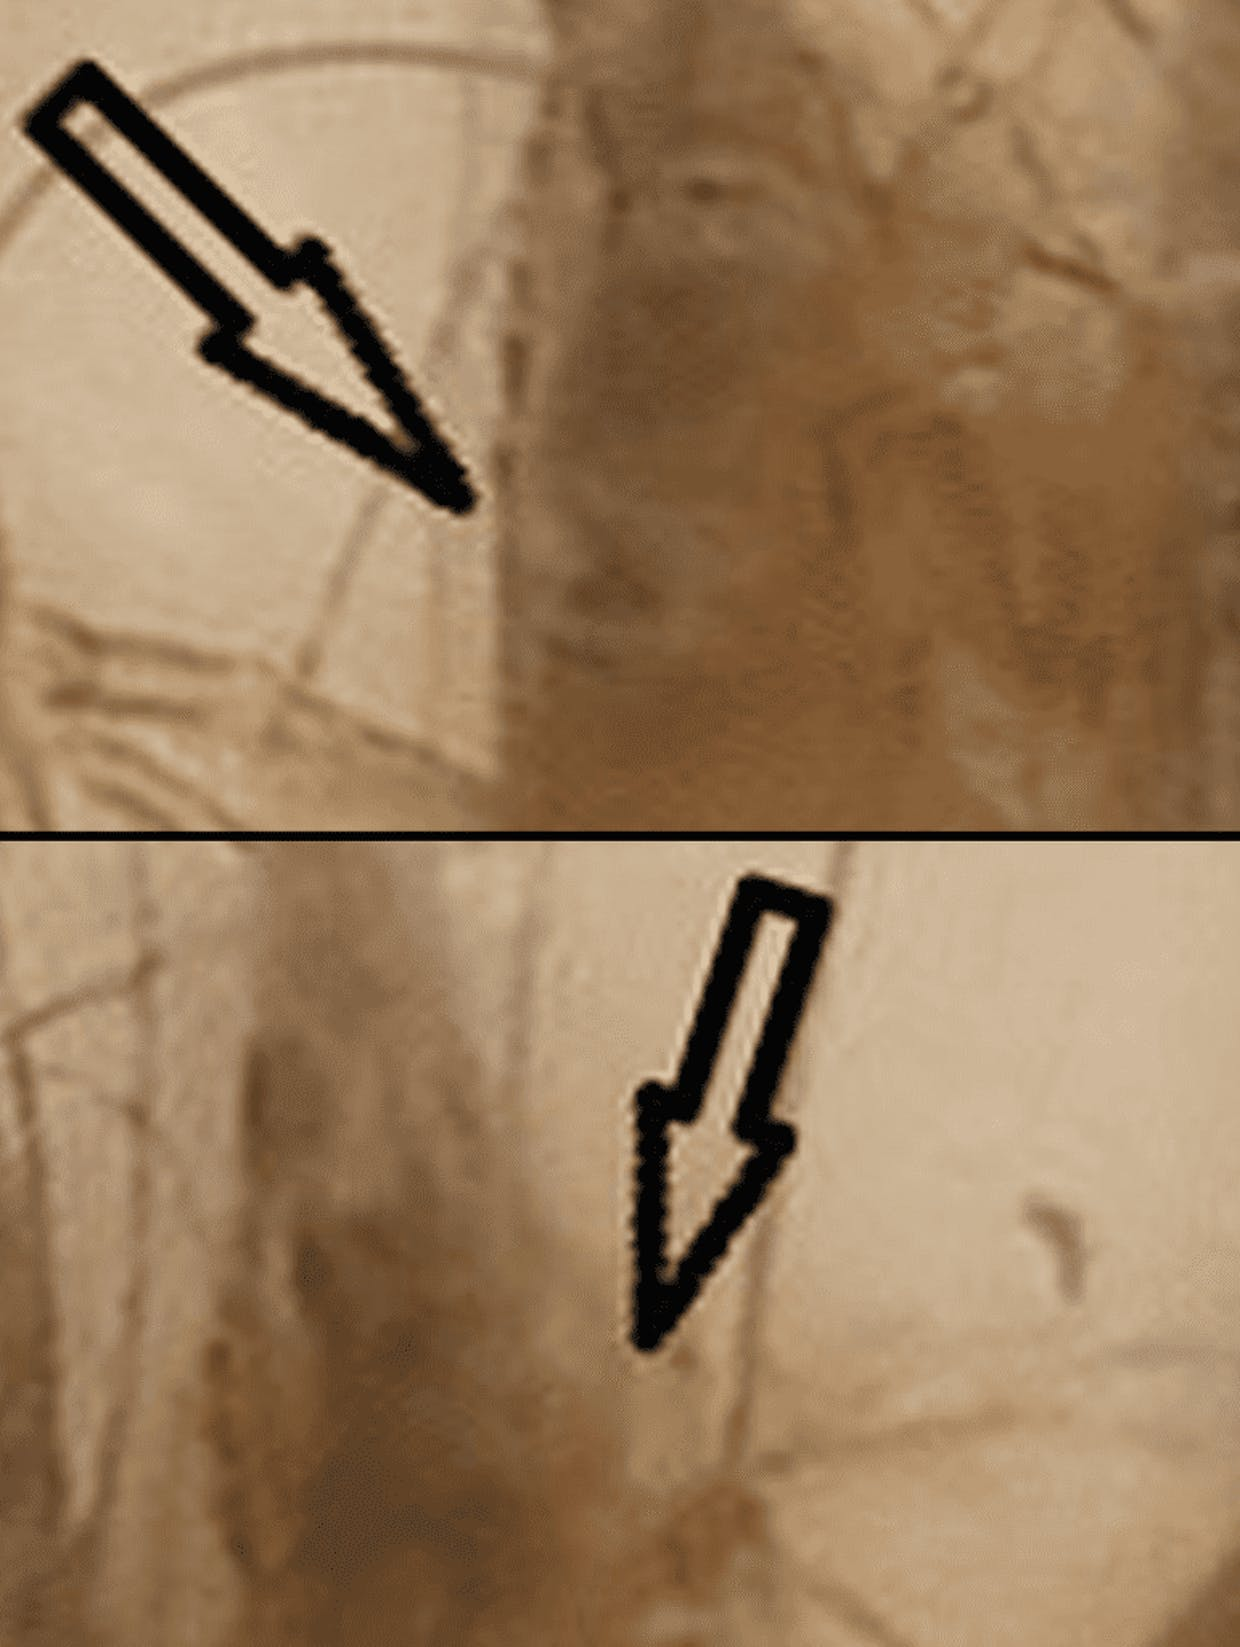 In addition to my previous question maybe the image is more clear here.